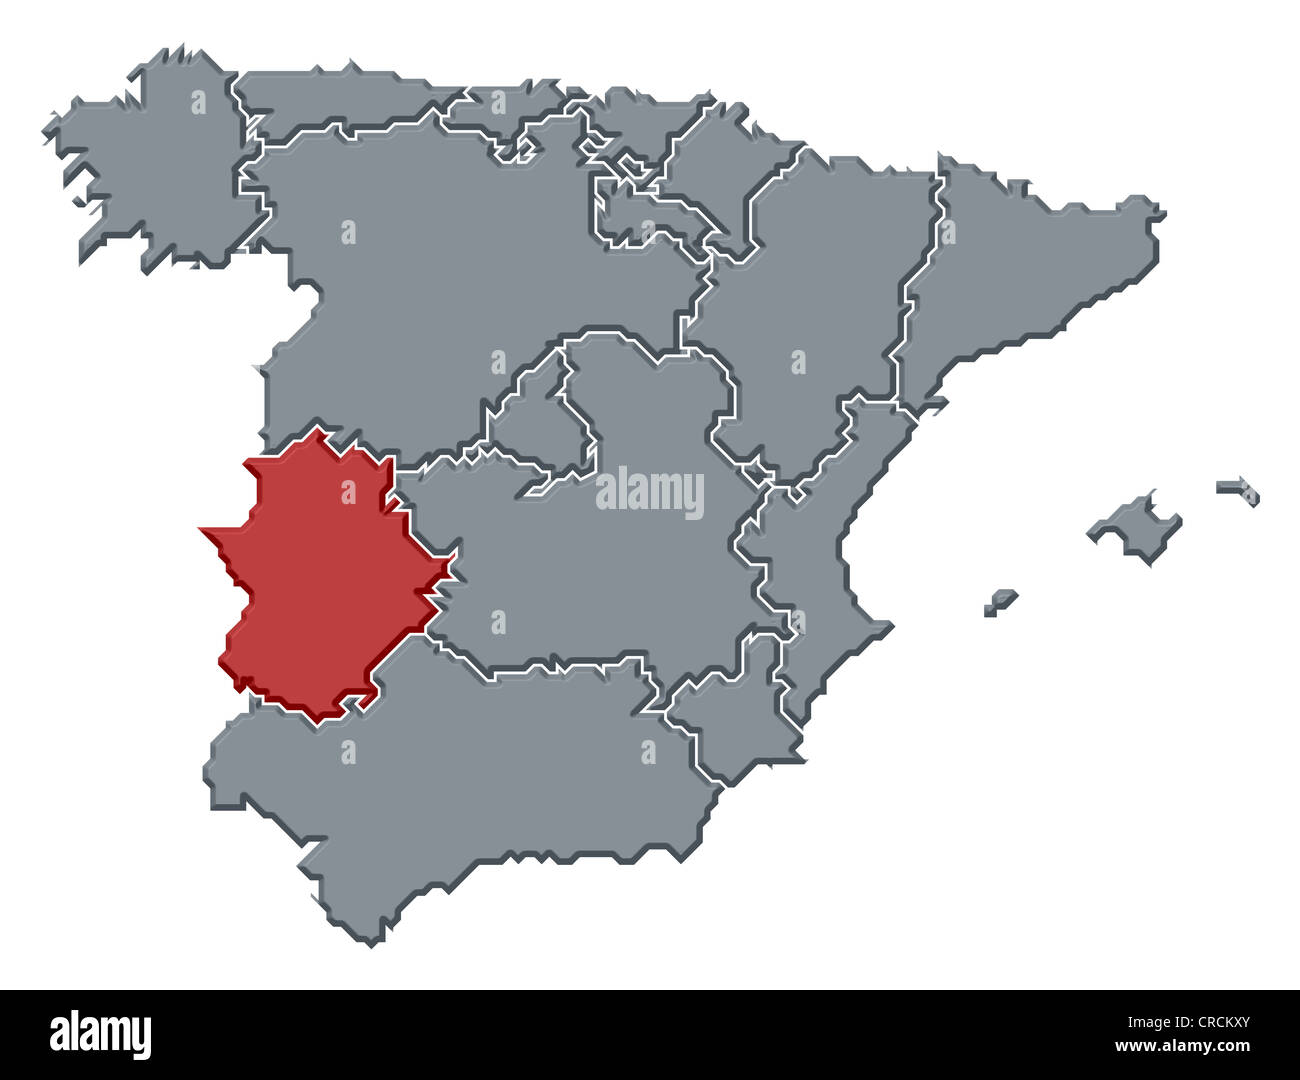 Where Is Spain On The Map Of The World.Political Map Of Spain With The Several Regions Where Extremadura Is